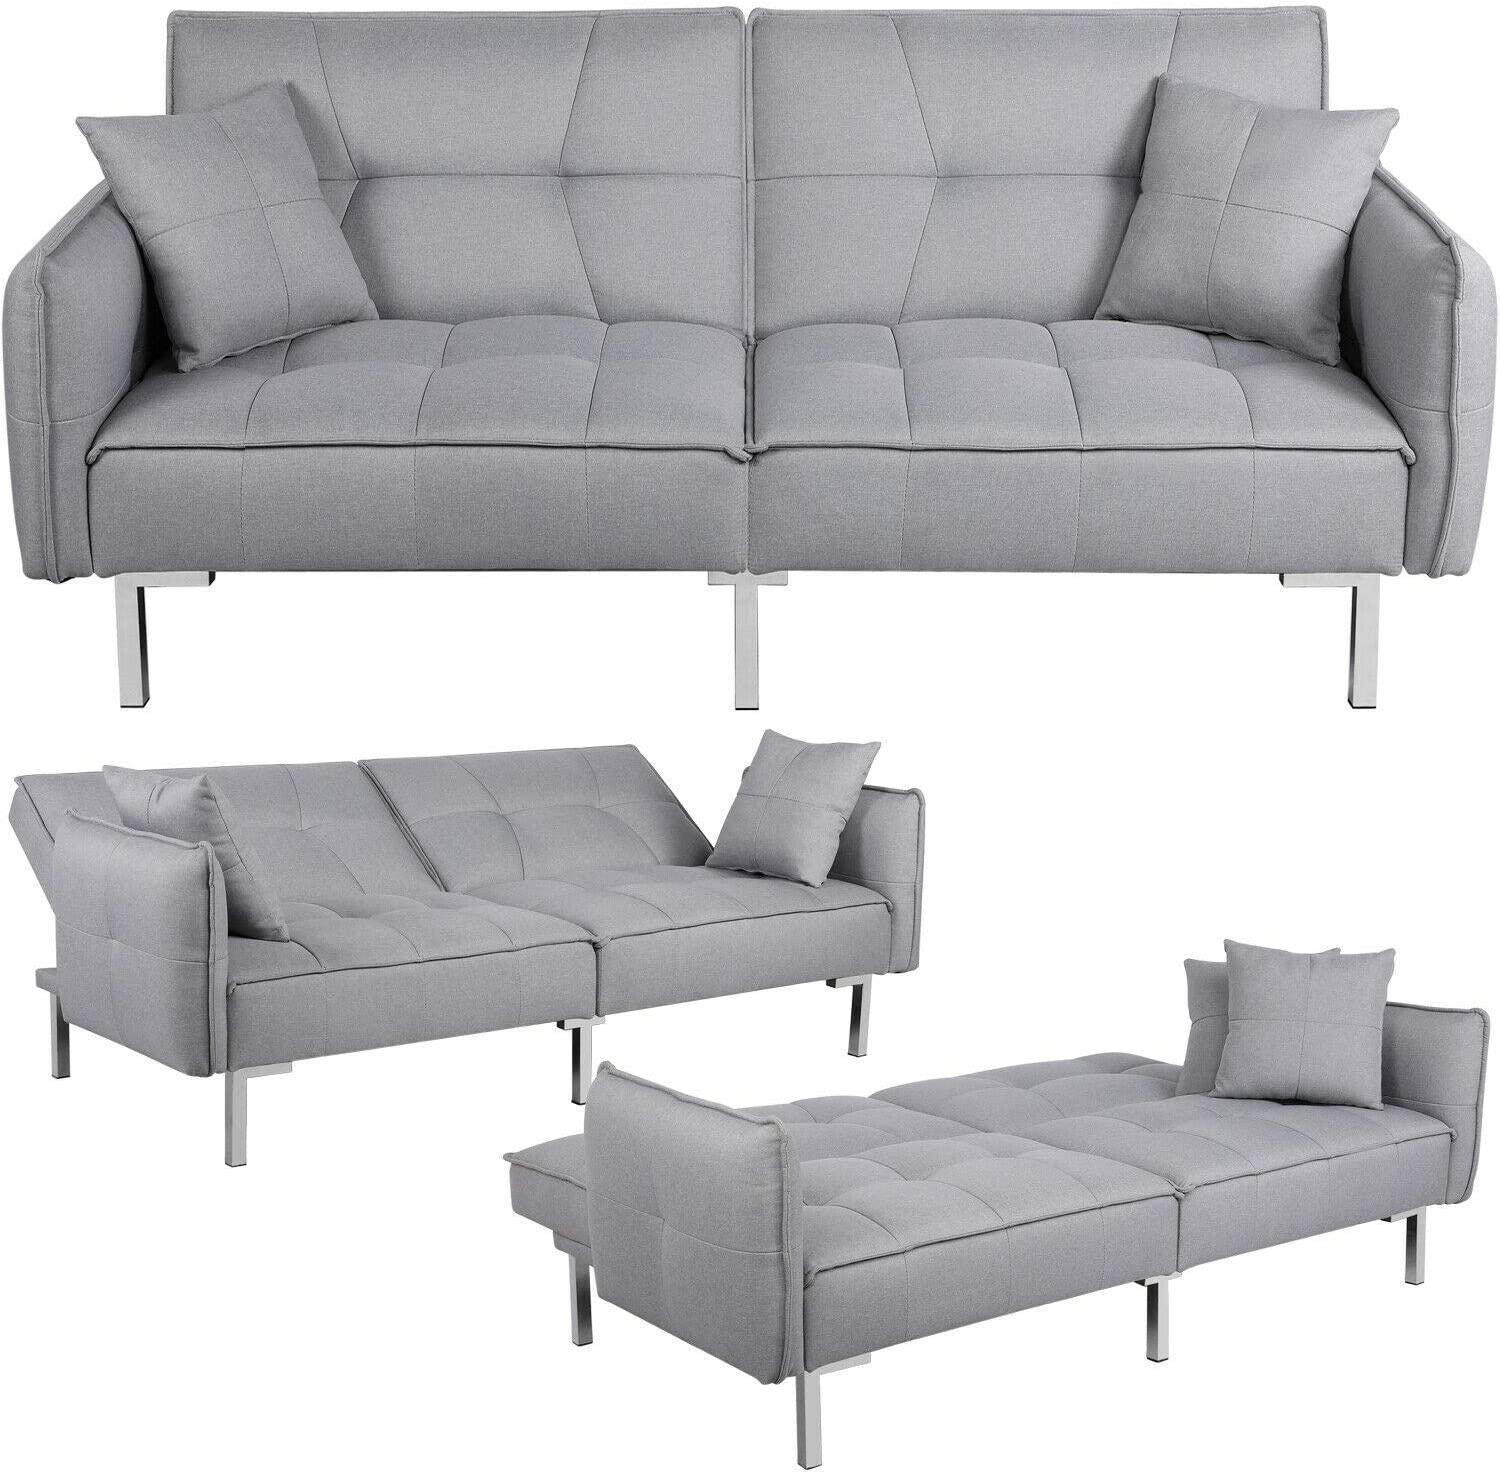 Award-winning store Gifts Convertible Sleeper Sofa Bed Couch Pull Daybed R Sofas Futon Out